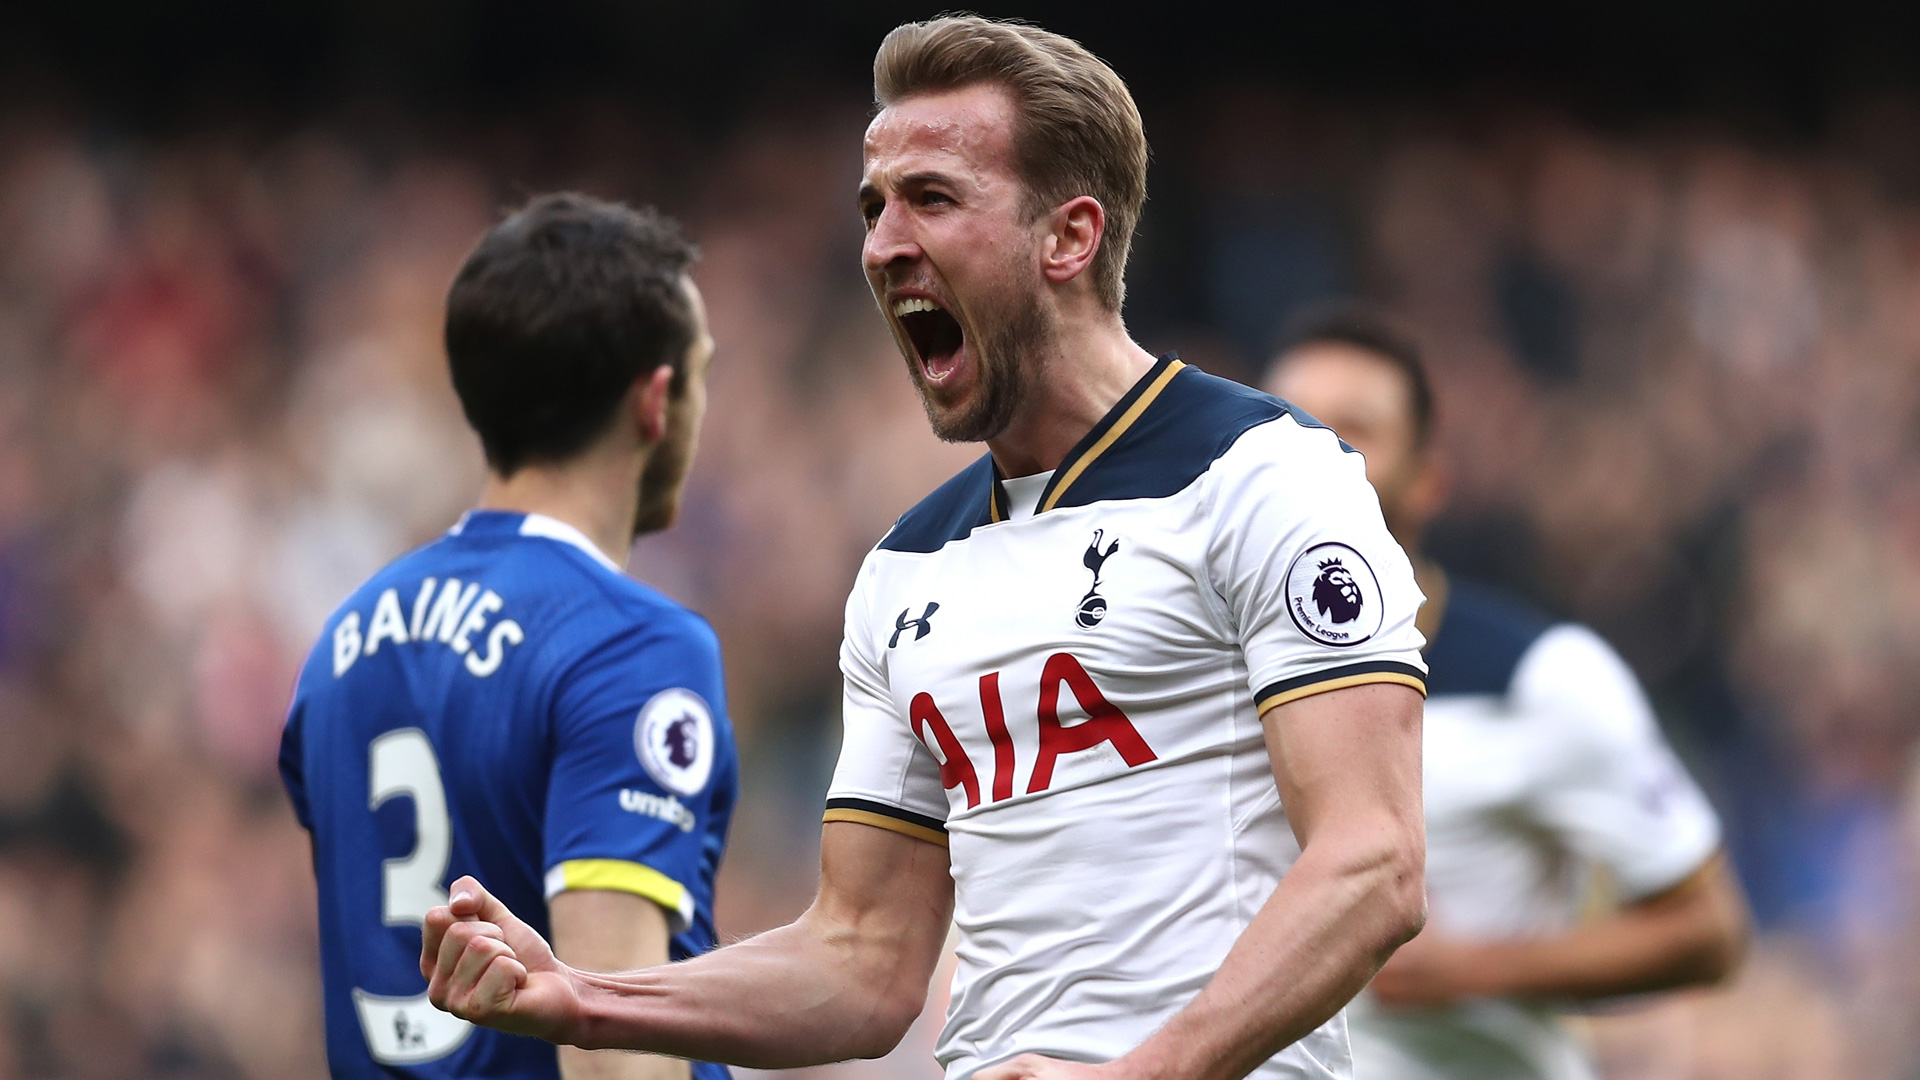 Premier League: Kane brille et Tottenham domine Everton